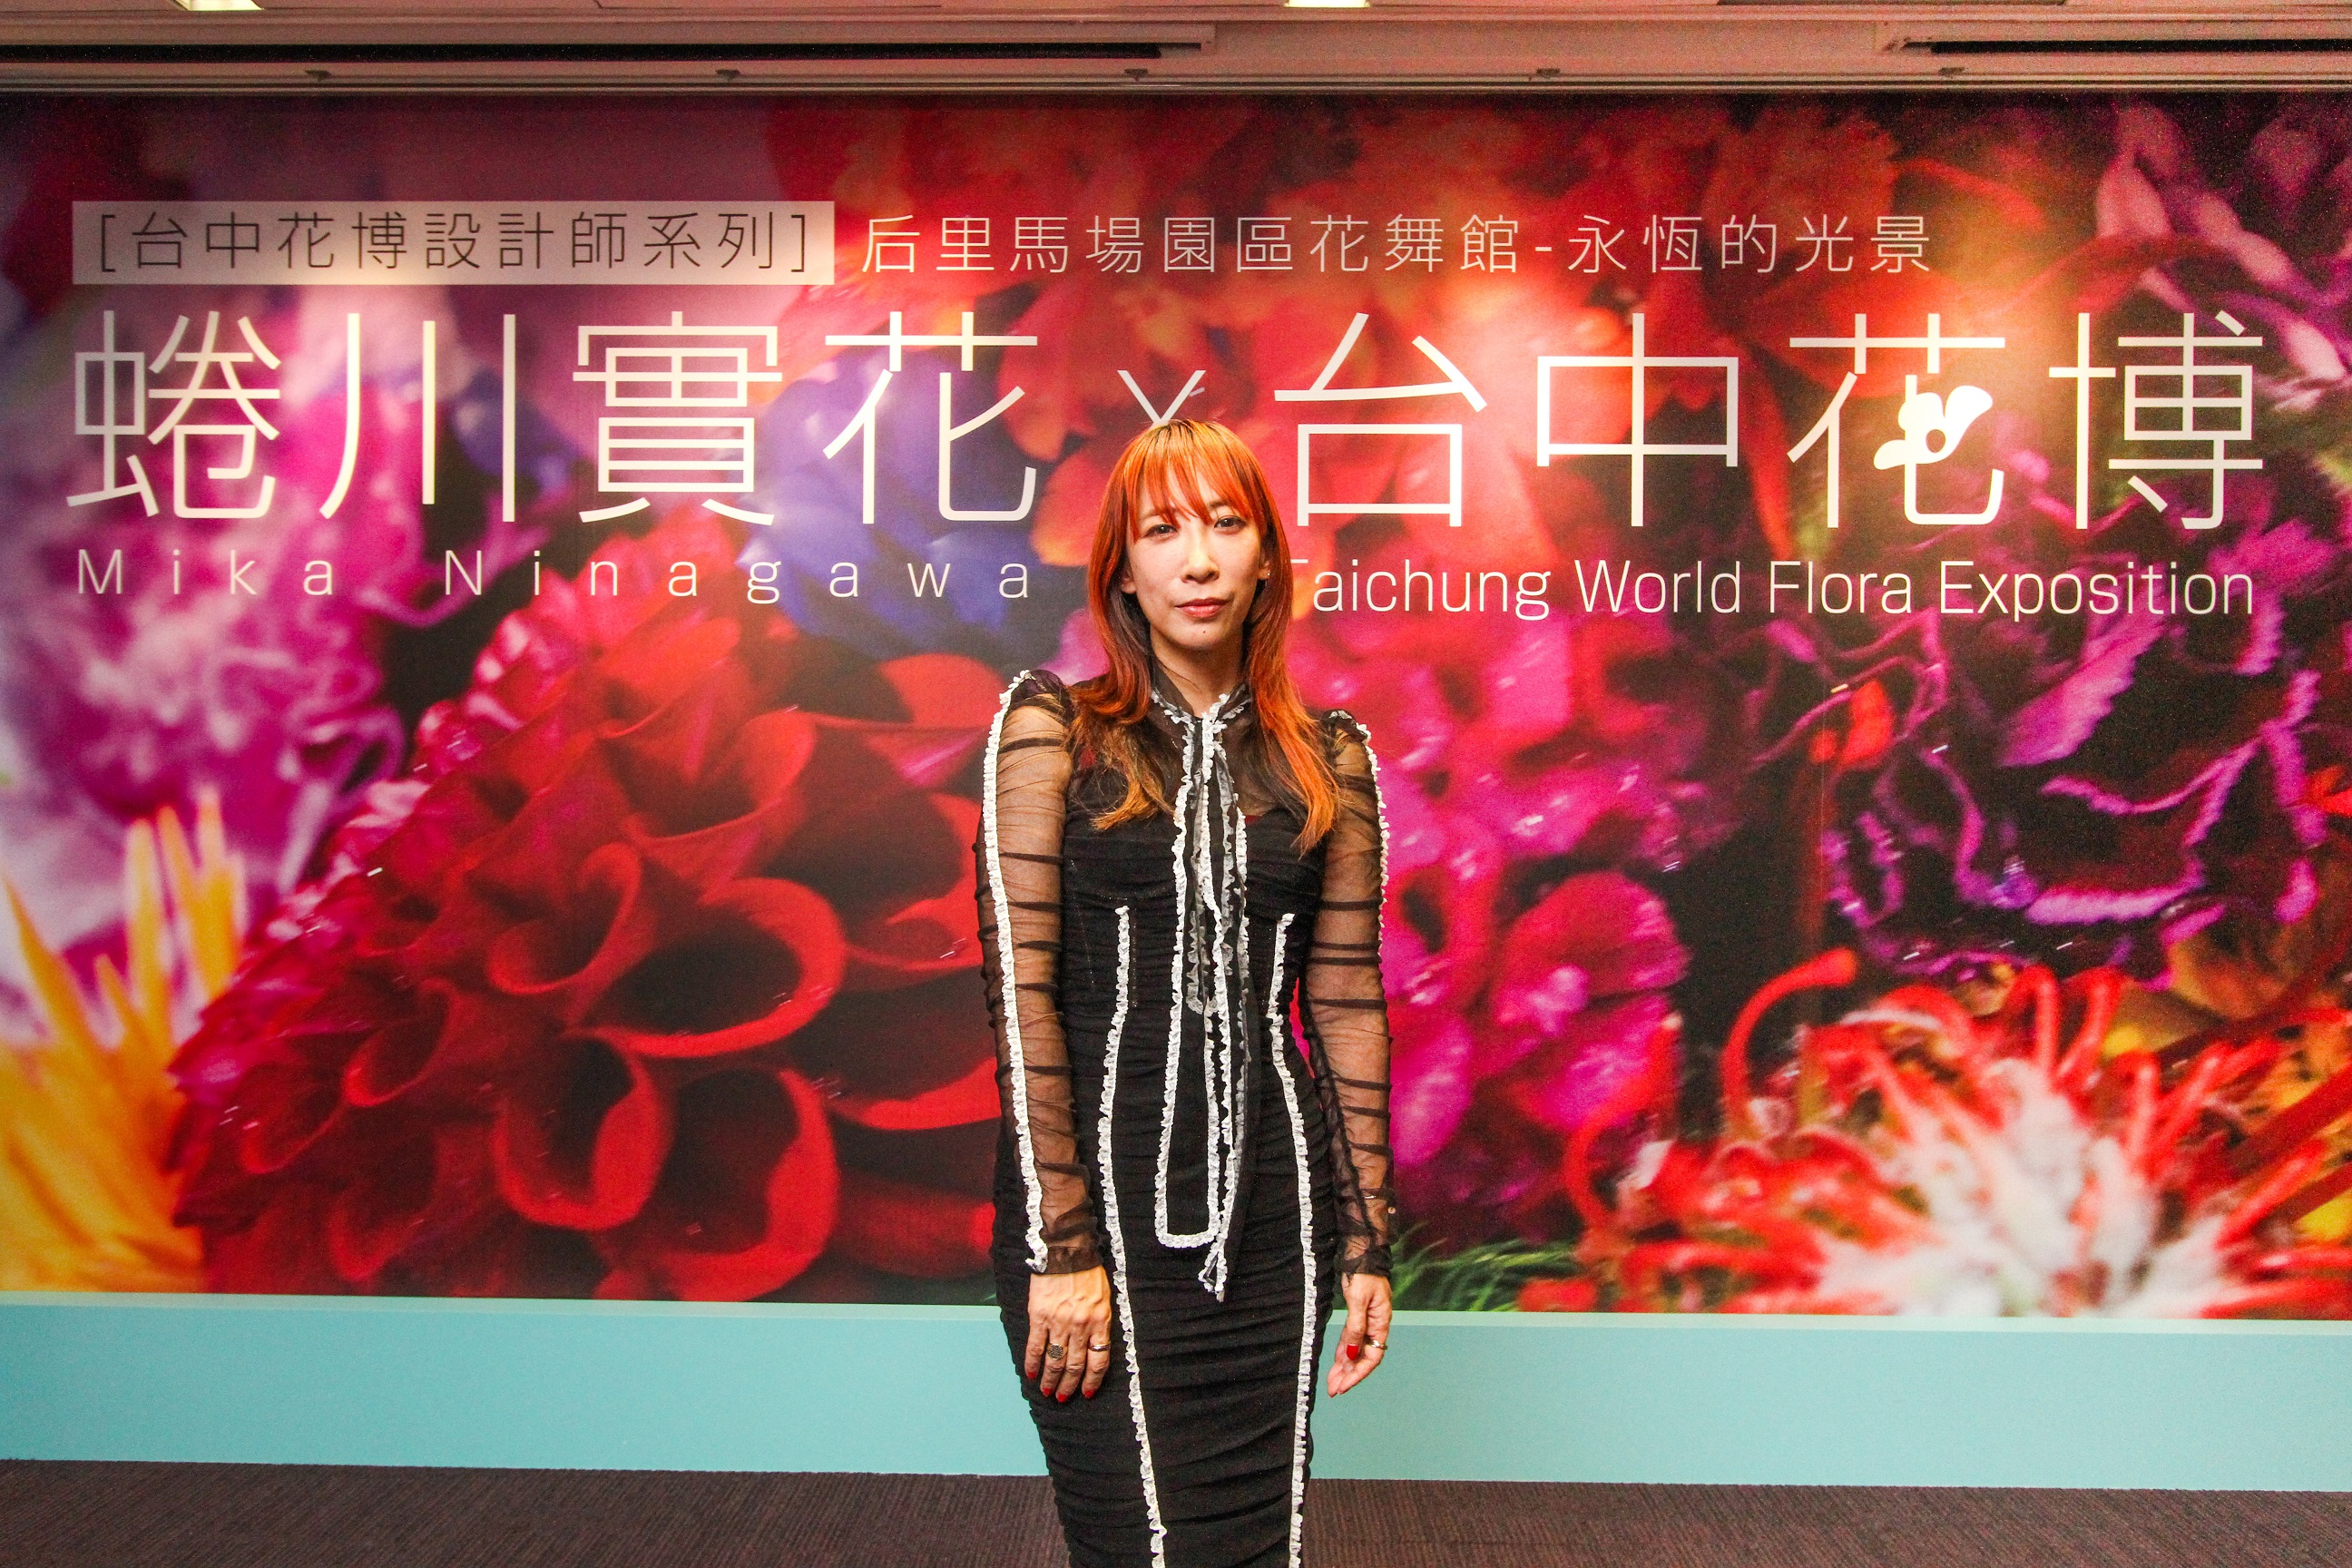 Distinguished Japanese photographer Mika Ninagawa visits Taiwan to discuss her exhibition at the Taichung flora expo Blossom Pavilion